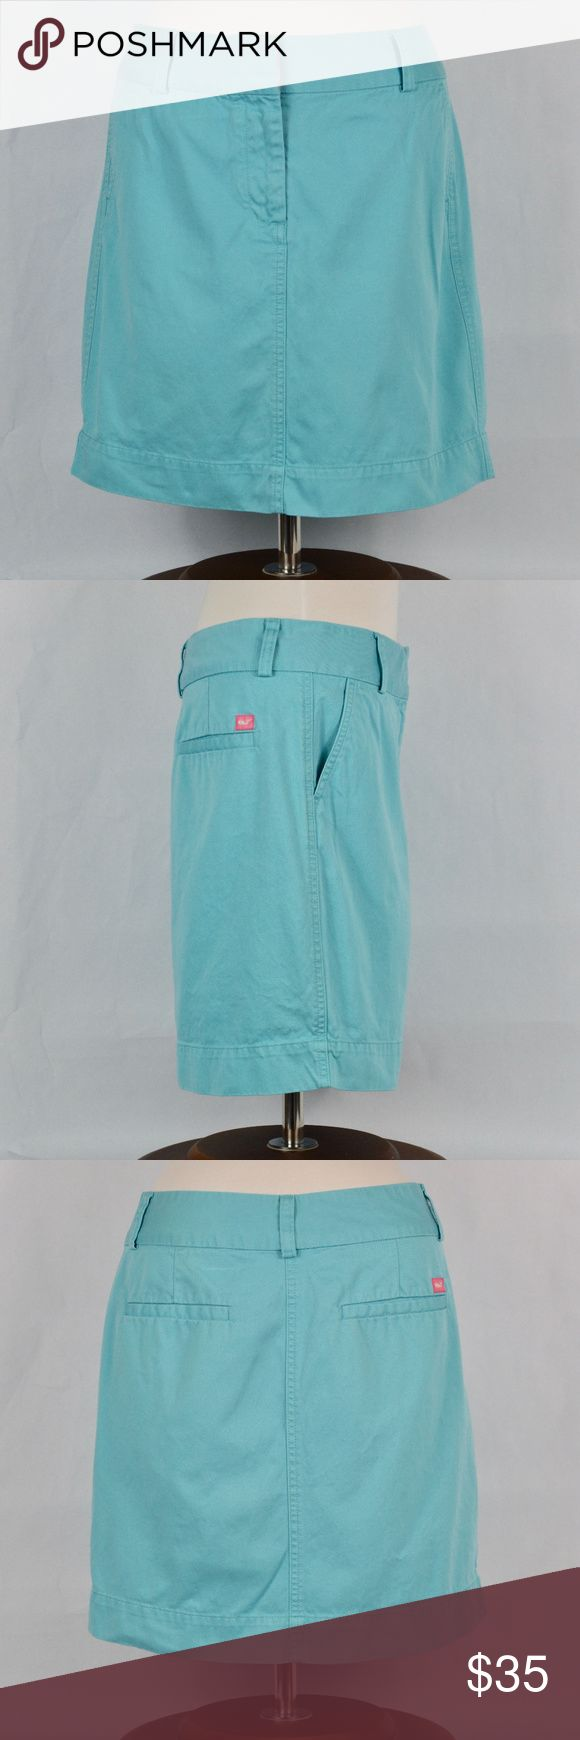 {Vineyard Vines} Blue Mini Skirt Wonderful for spring and summer!! This beautifully classic light blue cotton skirt has a pink Vineyard Vines whale embroidered logo. Perfect paired with shirts tucked in or out. Skirt has pockets. It is in excellent condition with no damage, marks, or repairs.   *170908_52_0348y Vineyard Vines Skirts Mini